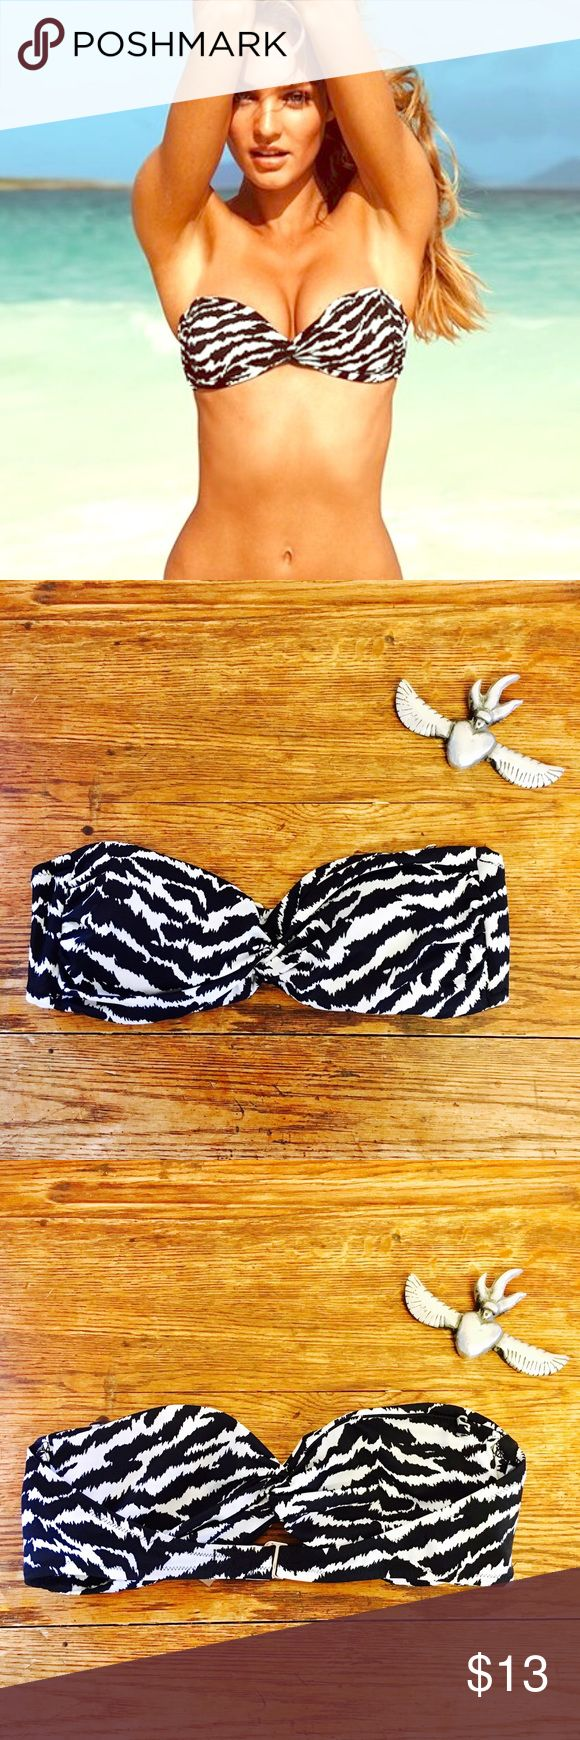 ☀️☀️ Victoria's Secret Zebra Bandeau Bikini Top ☀️☀️ gentle wear, good pre-loved condition. a few loose strings, paint wear to metal clasp. very light pilling and color fading. removable pads, silver hooks for halter strap (strap not included). super cute. Victoria's Secret Swim Bikinis